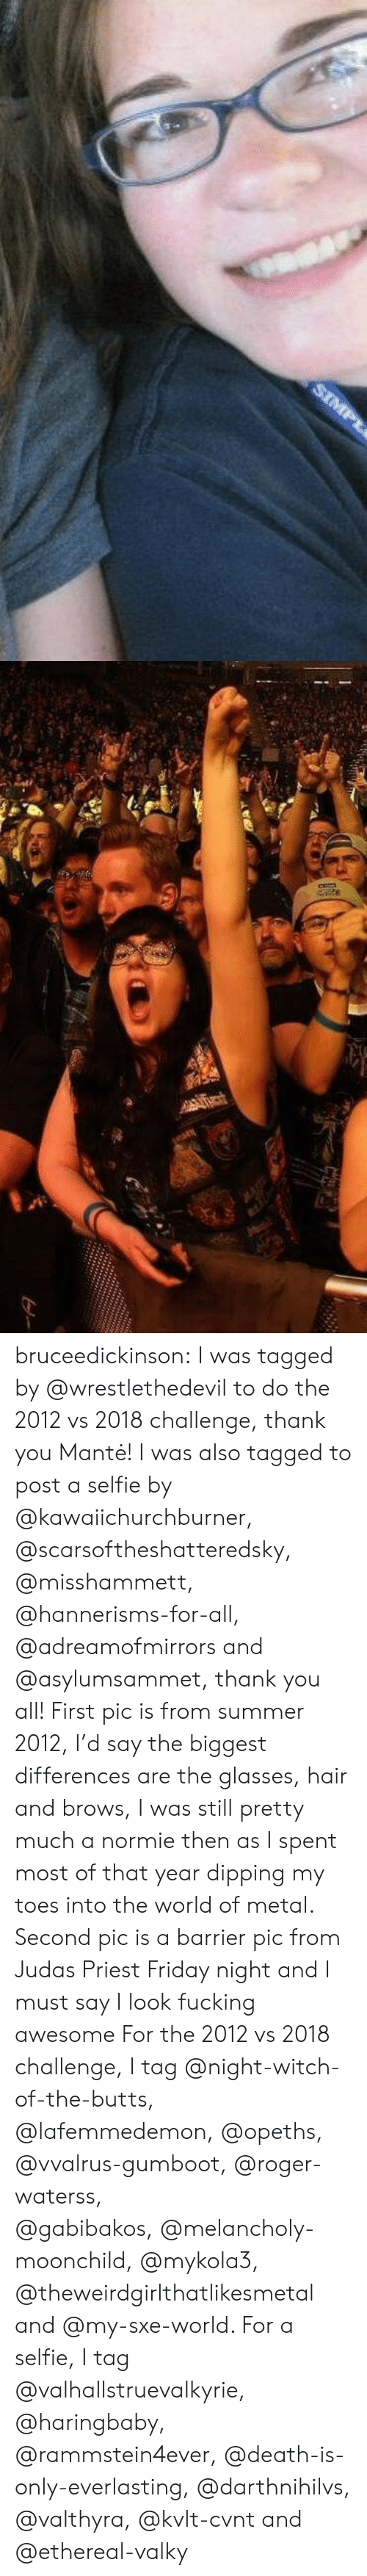 Friday, Fucking, and Roger: bruceedickinson: I was tagged by @wrestlethedevil to do the 2012 vs 2018 challenge, thank you Mantė! I was also tagged to post a selfie by @kawaiichurchburner, @scarsoftheshatteredsky, @misshammett, @hannerisms-for-all, @adreamofmirrors and @asylumsammet, thank you all! First pic is from summer 2012, I'd say the biggest differences are the glasses, hair and brows, I was still pretty much a normie then as I spent most of that year dipping my toes into the world of metal. Second pic is a barrier pic from Judas Priest Friday night and I must say I look fucking awesome For the 2012 vs 2018 challenge, I tag @night-witch-of-the-butts, @lafemmedemon, @opeths, @vvalrus-gumboot, @roger-waterss, @gabibakos,@melancholy-moonchild,@mykola3, @theweirdgirlthatlikesmetal and @my-sxe-world. For a selfie, I tag @valhallstruevalkyrie, @haringbaby, @rammstein4ever, @death-is-only-everlasting, @darthnihilvs, @valthyra, @kvlt-cvnt and @ethereal-valky